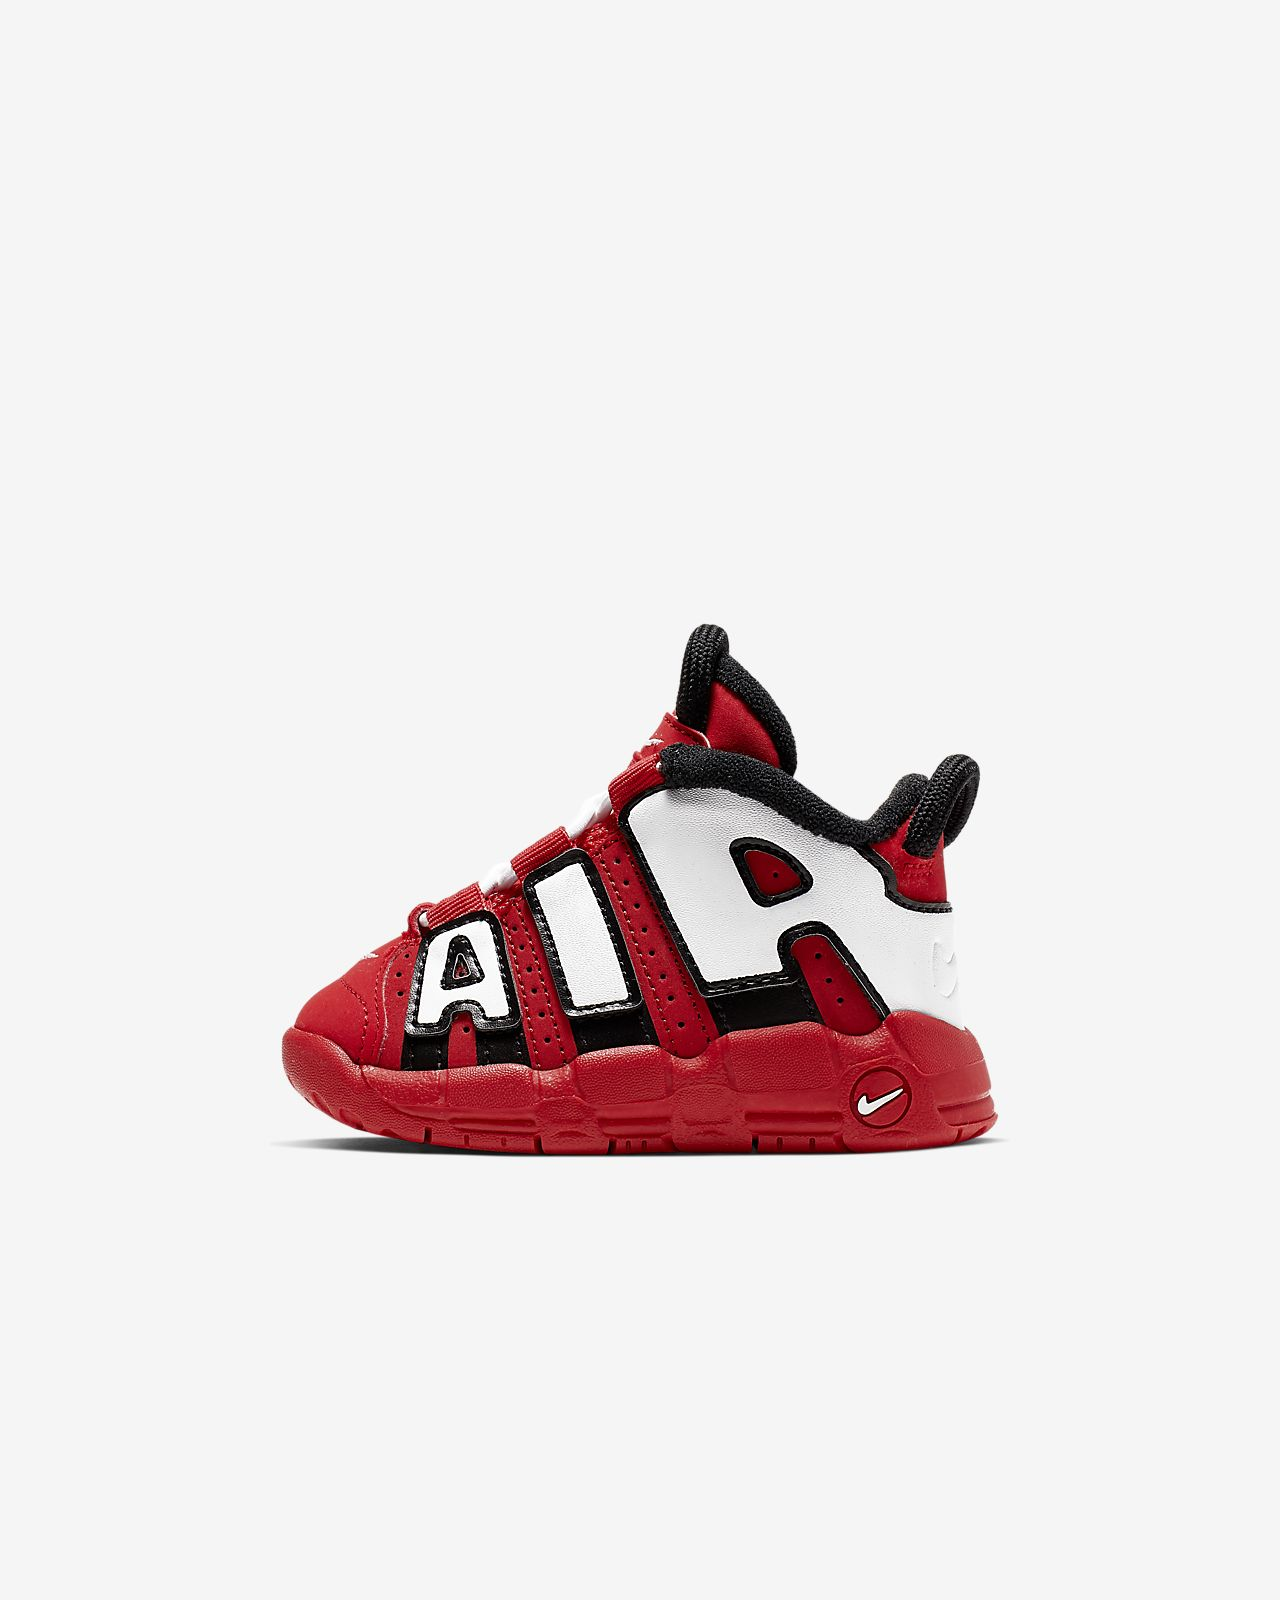 buy online 3a7c5 d8a34 Nike Air More Uptempo QS